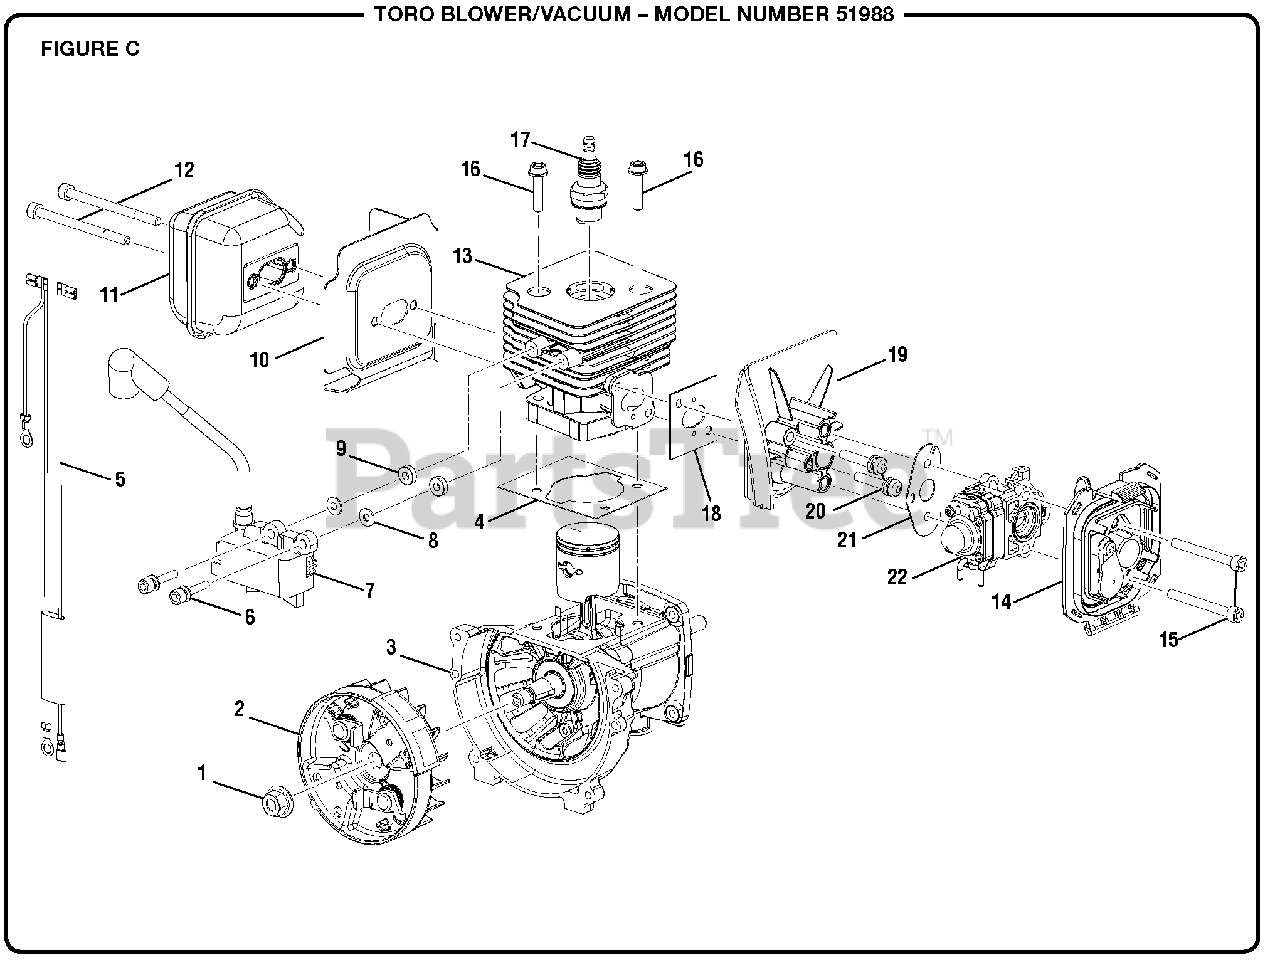 Toro Parts on the Figure C Diagram for 51988 (090157006